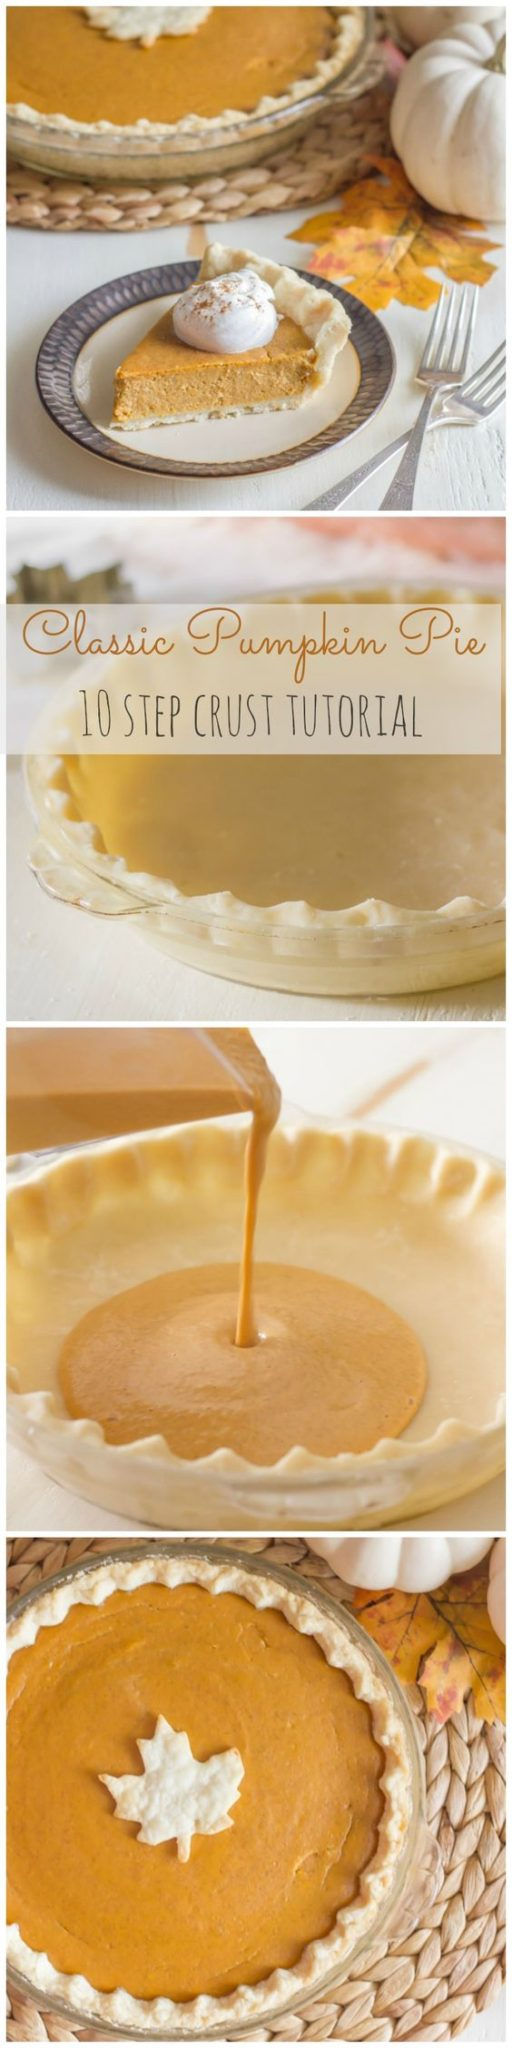 Classic Pumpkin Pie Recipe with 10 Step Pie Crust Tutorial and Recipes | Lovely Little Kitchen - The BEST Classic, Improved and Traditional Thanksgiving Dinner Menu Favorites Recipes - Main Dishes, Side Dishes, Appetizers, Salads, Yummy Desserts and more!